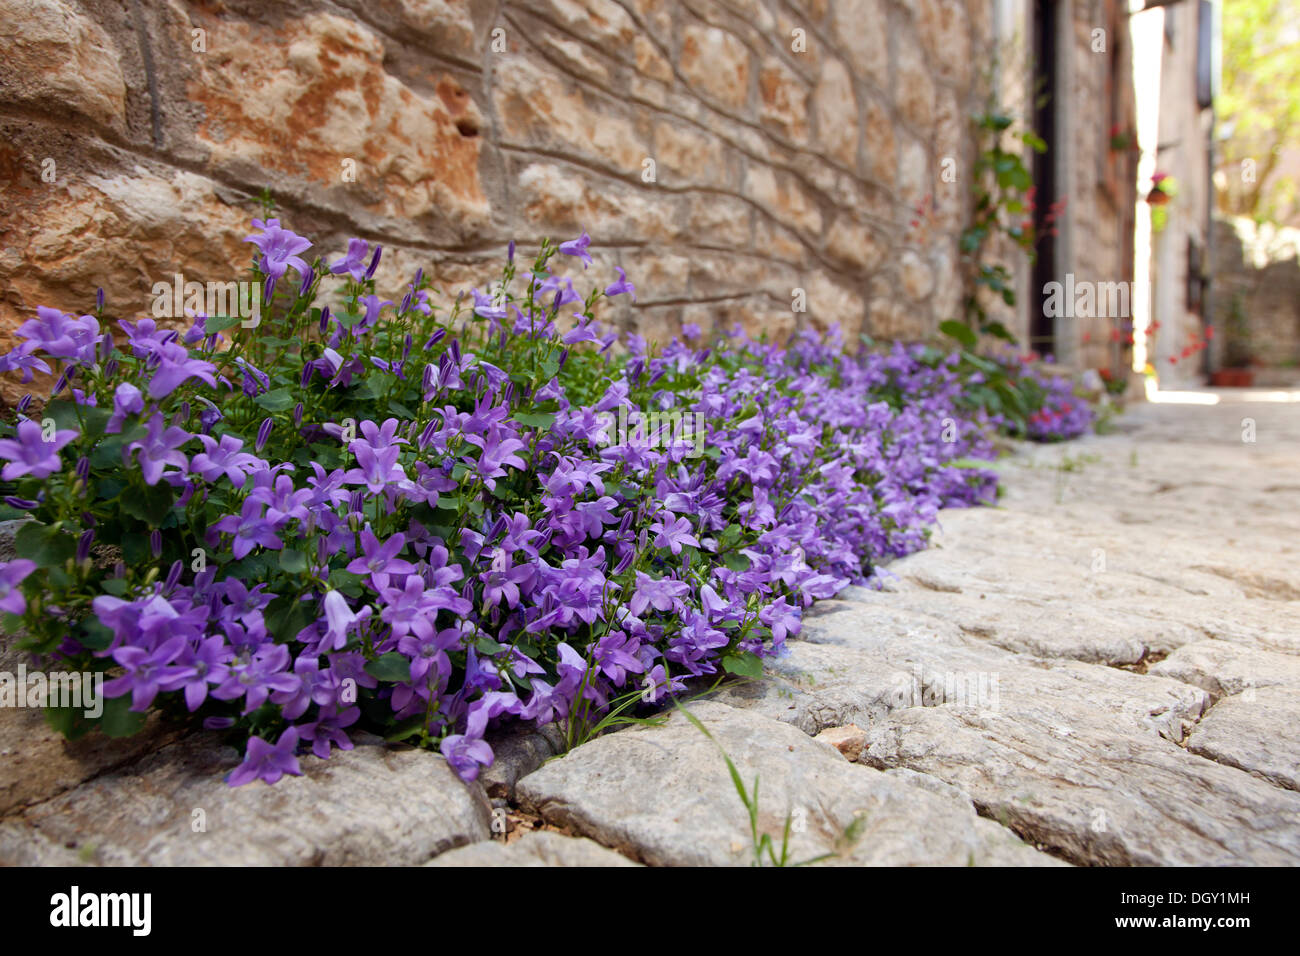 Forget-me-not (Myosotis), growing in an alley of the medieval town of Bale, Valle, Istria, Croatia, Europe, Bale, Stock Photo